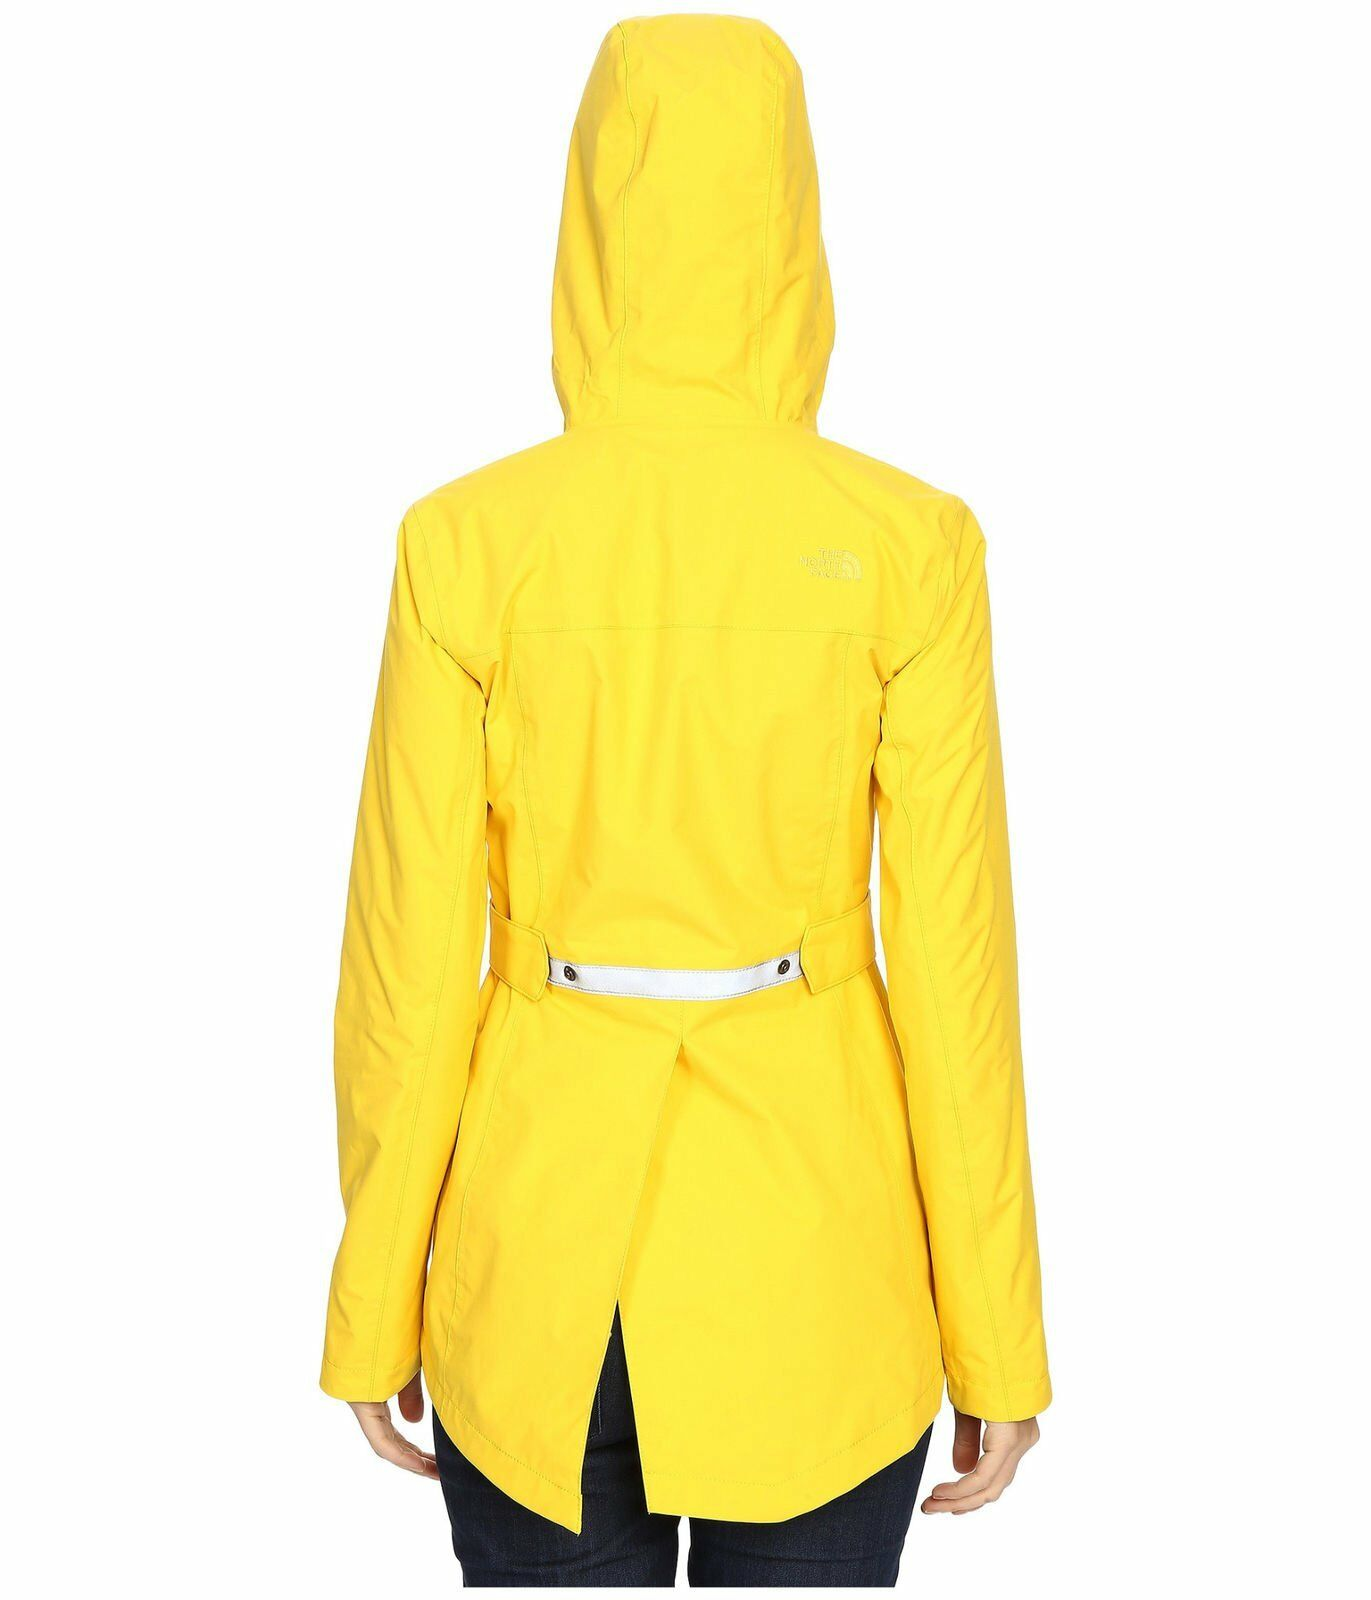 75b04b17d5 The North Face Women s Kindling Jacket Freesia Yellow Size XSmall ...